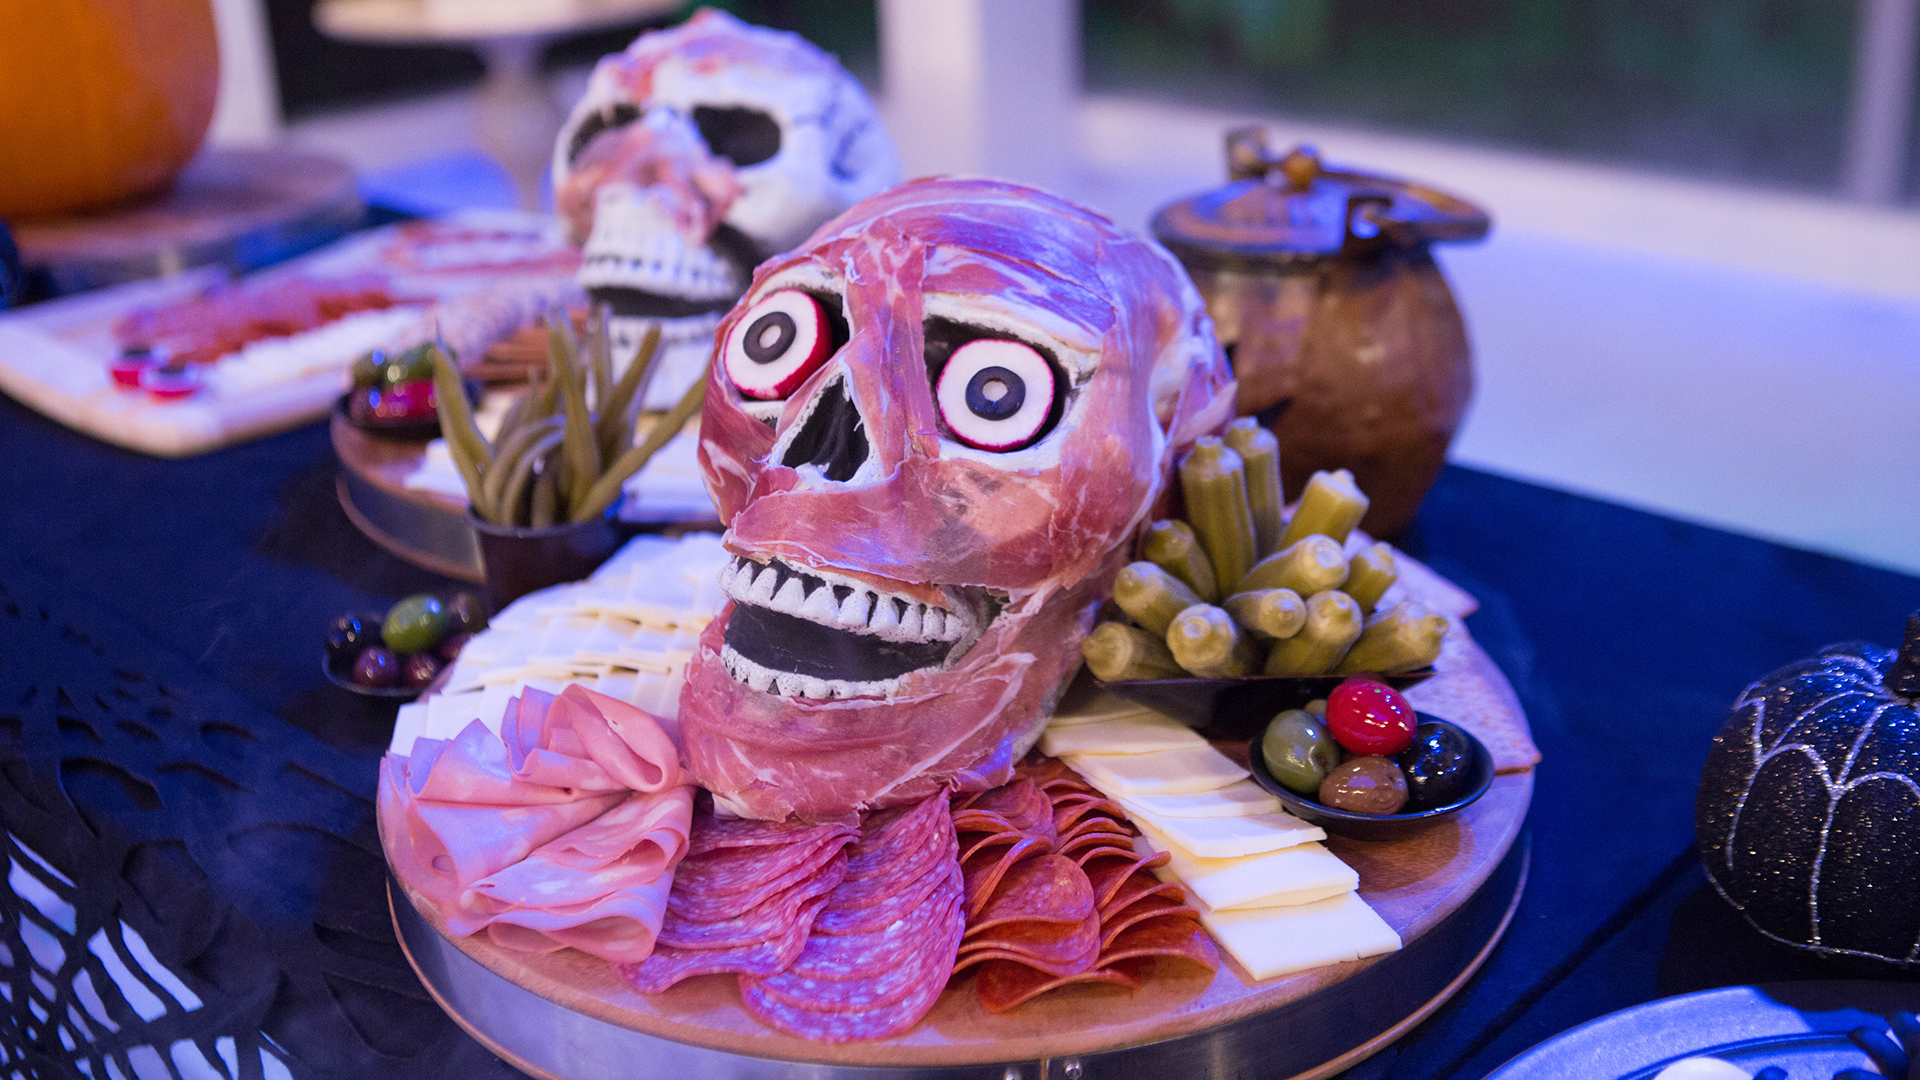 Give guests a Halloween feast and fright with this meat and cheese skull